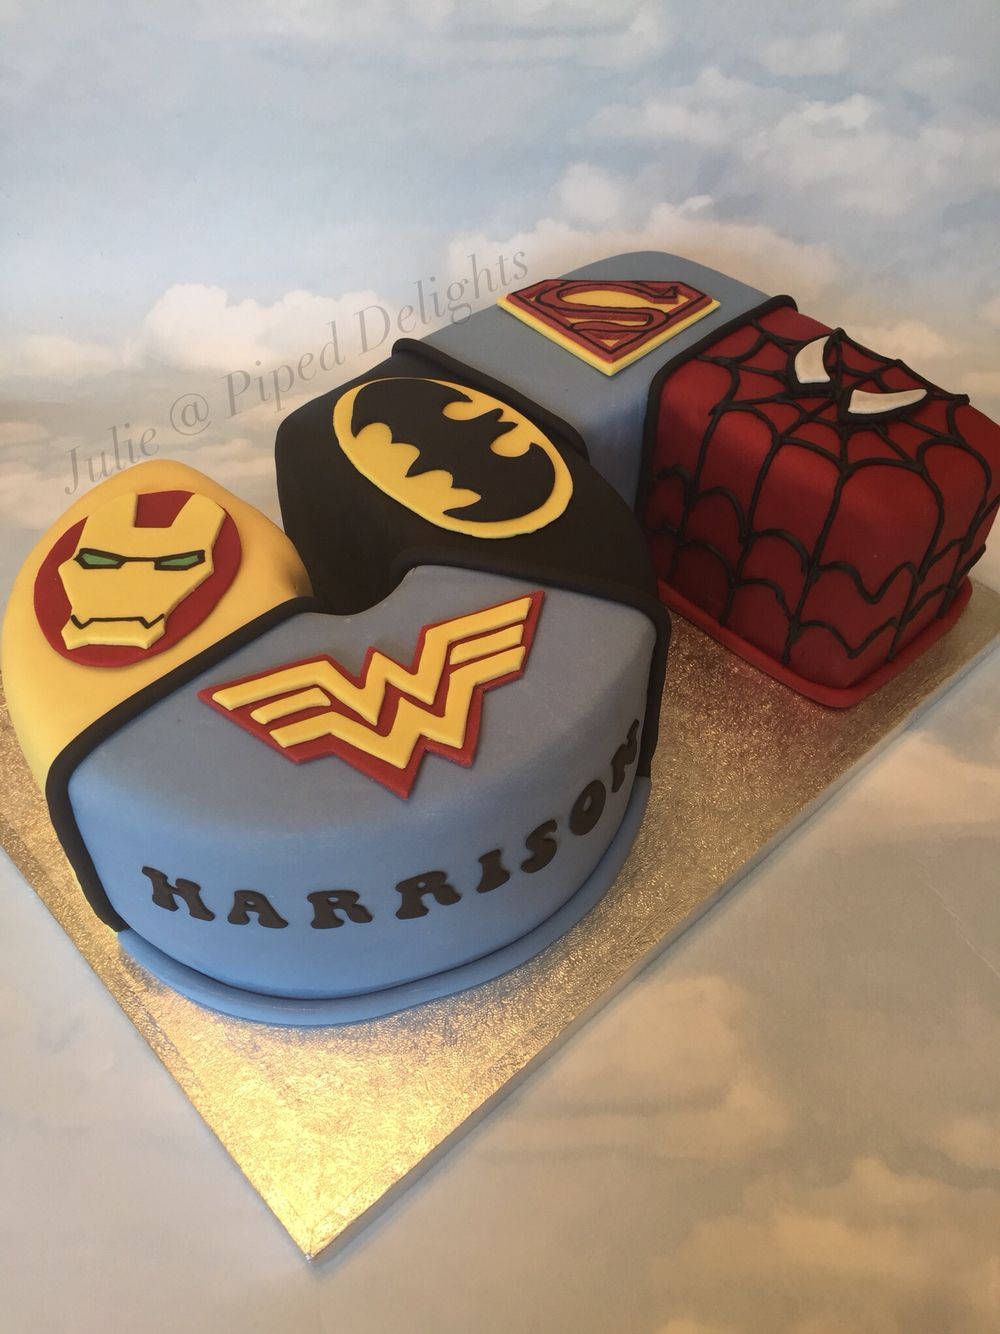 Age 5 Superhero Cake By Julie Piped Delights For A Little Fan With Spiderman Superman Batman Wonder Woman Iron Man Faces Logos